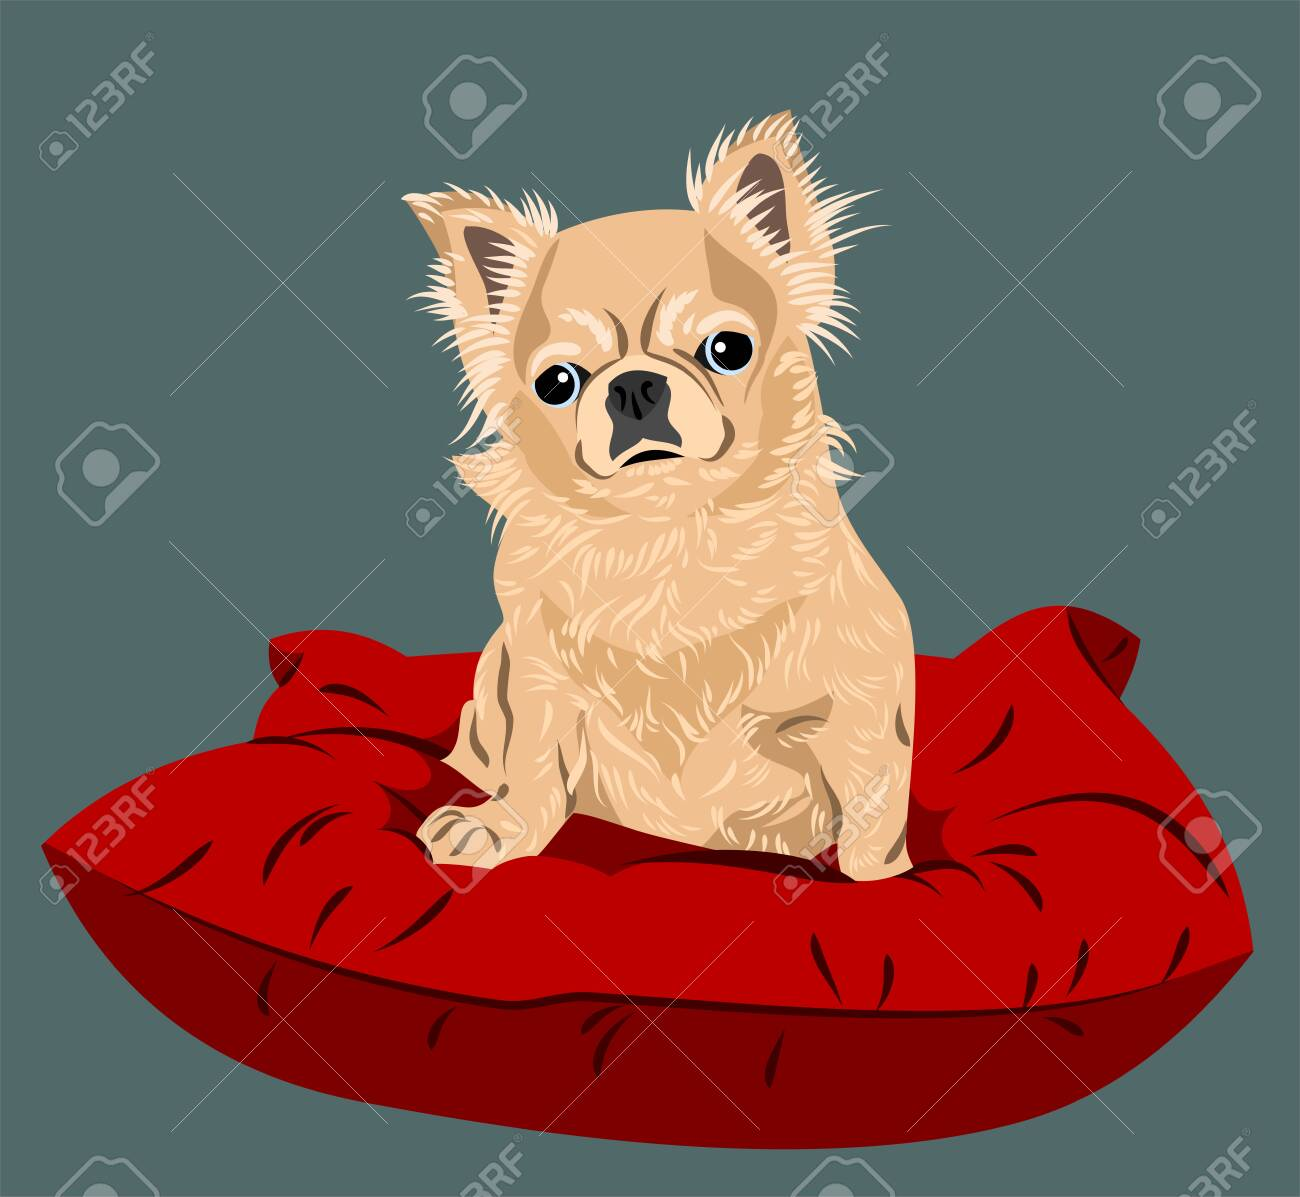 Funny and cute chihuahua dog portrait - 130800585